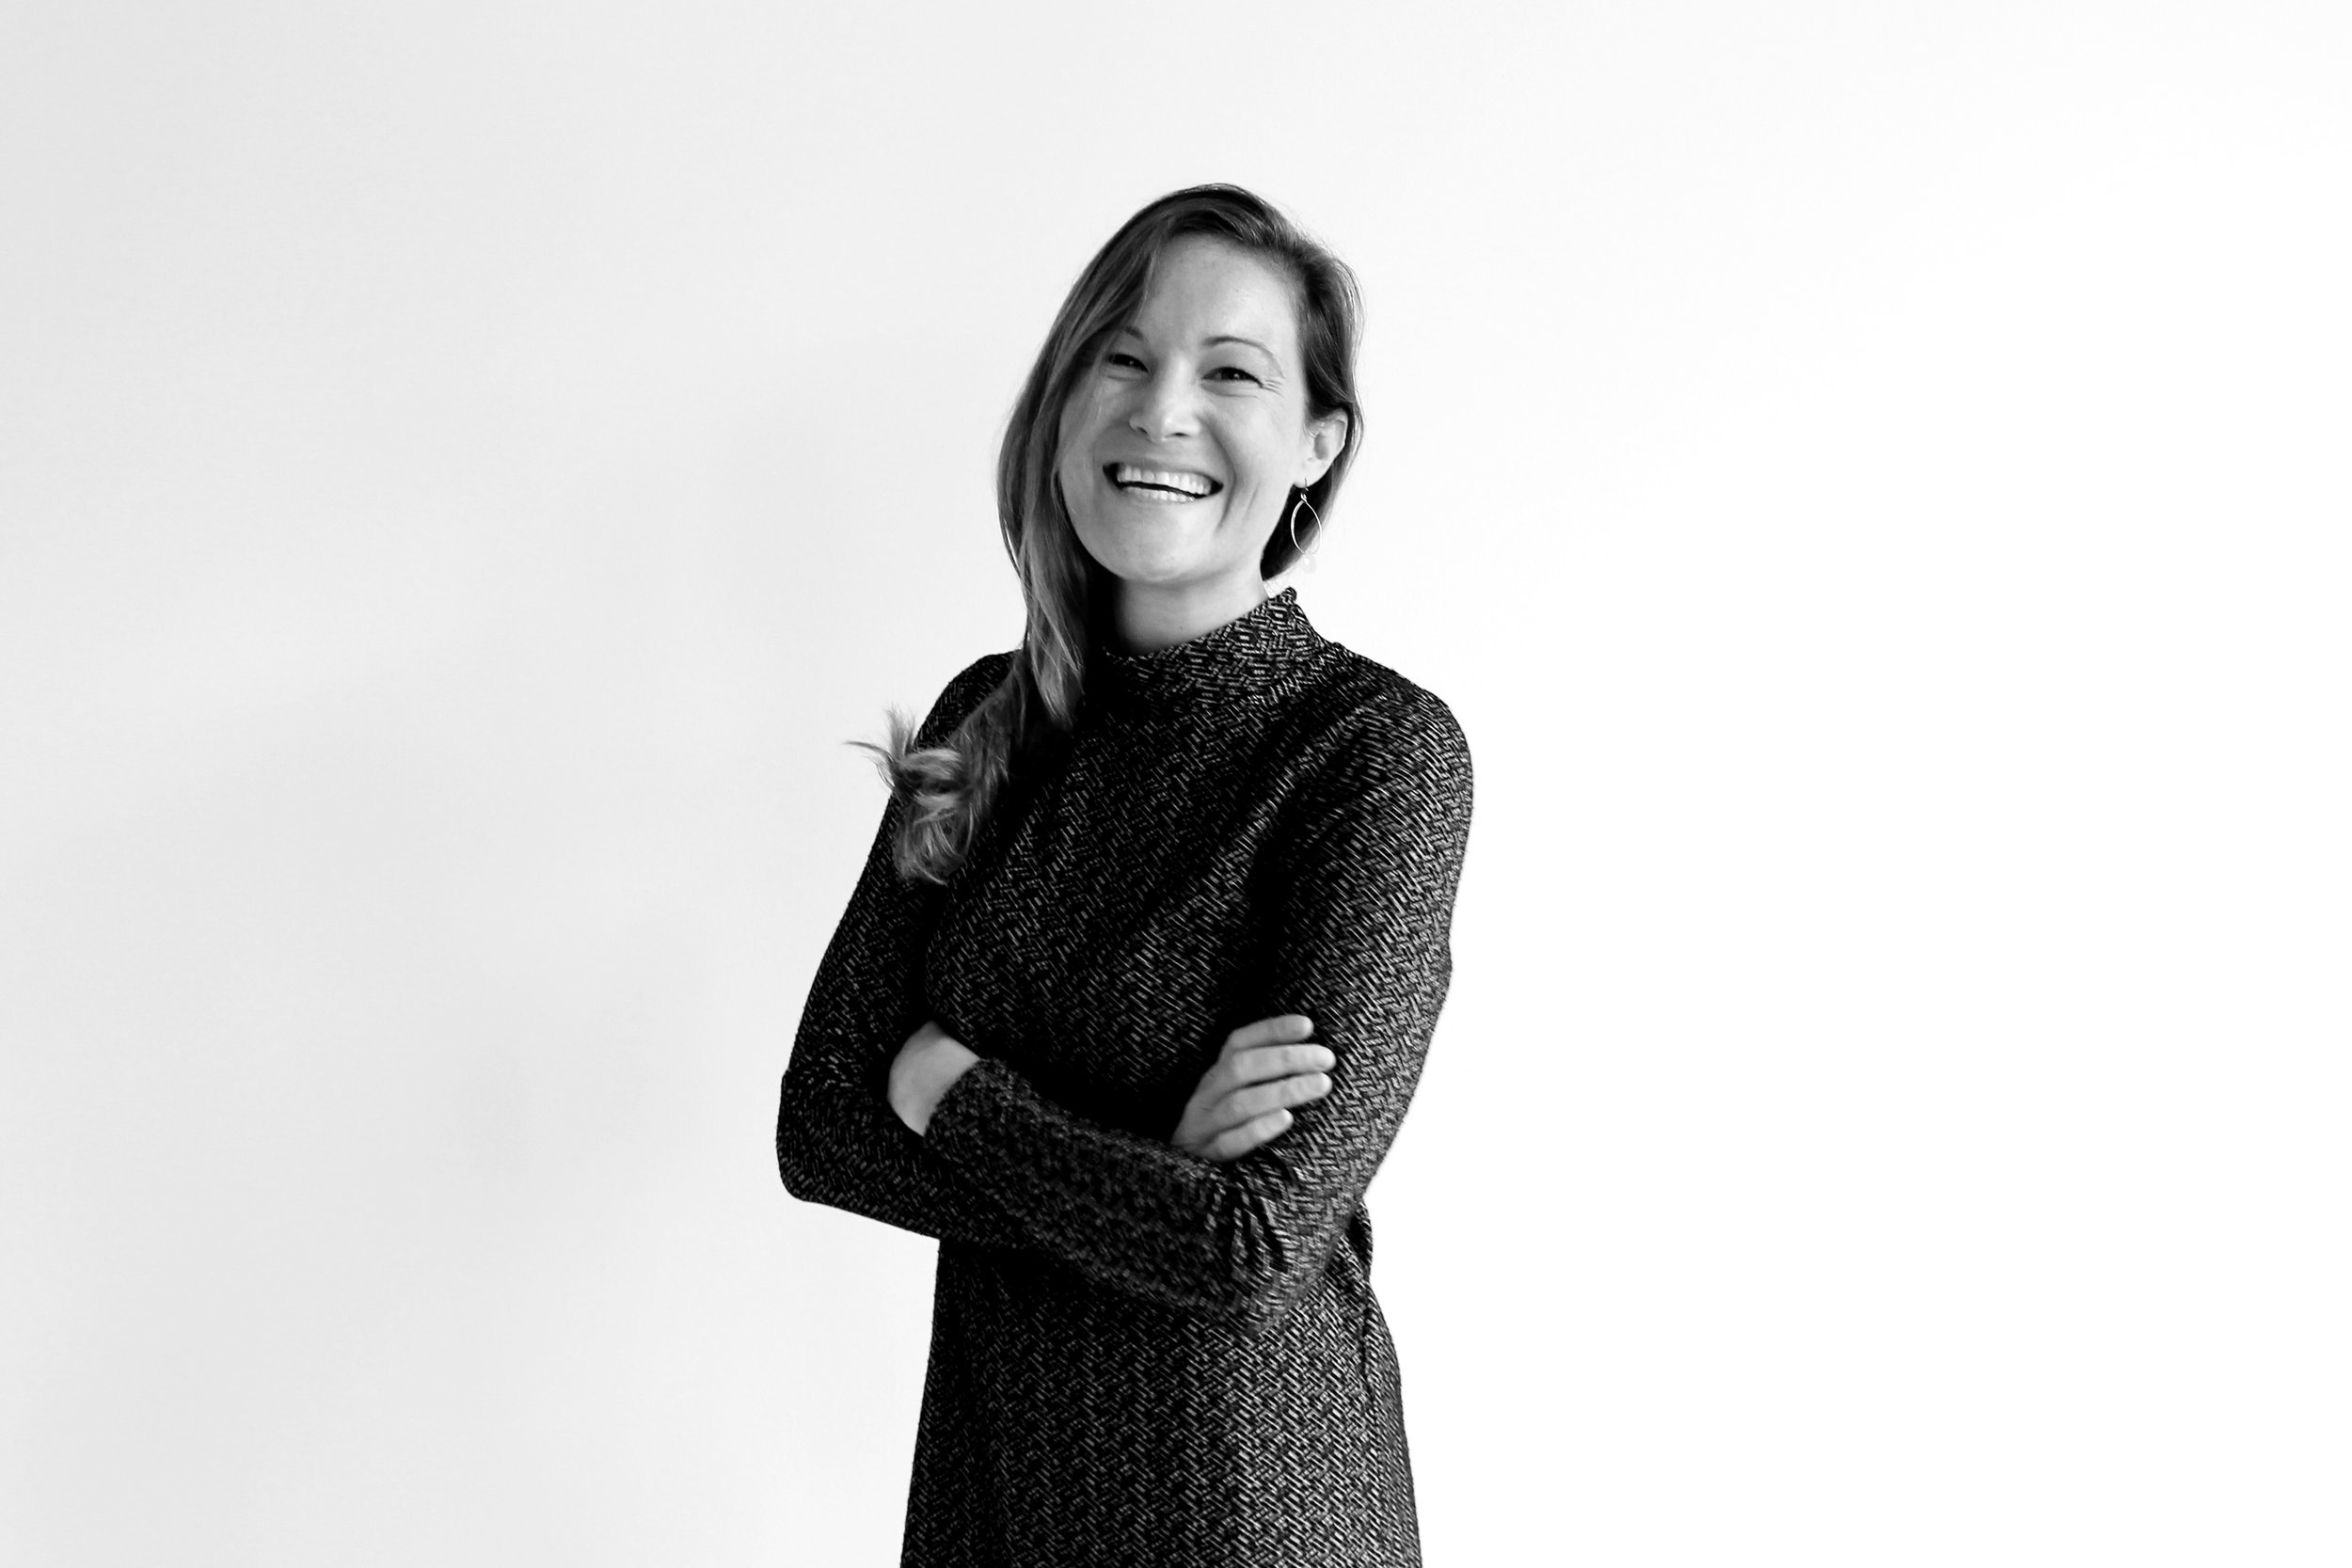 Amy Brown, Founder of Phoenix Brand Strategy